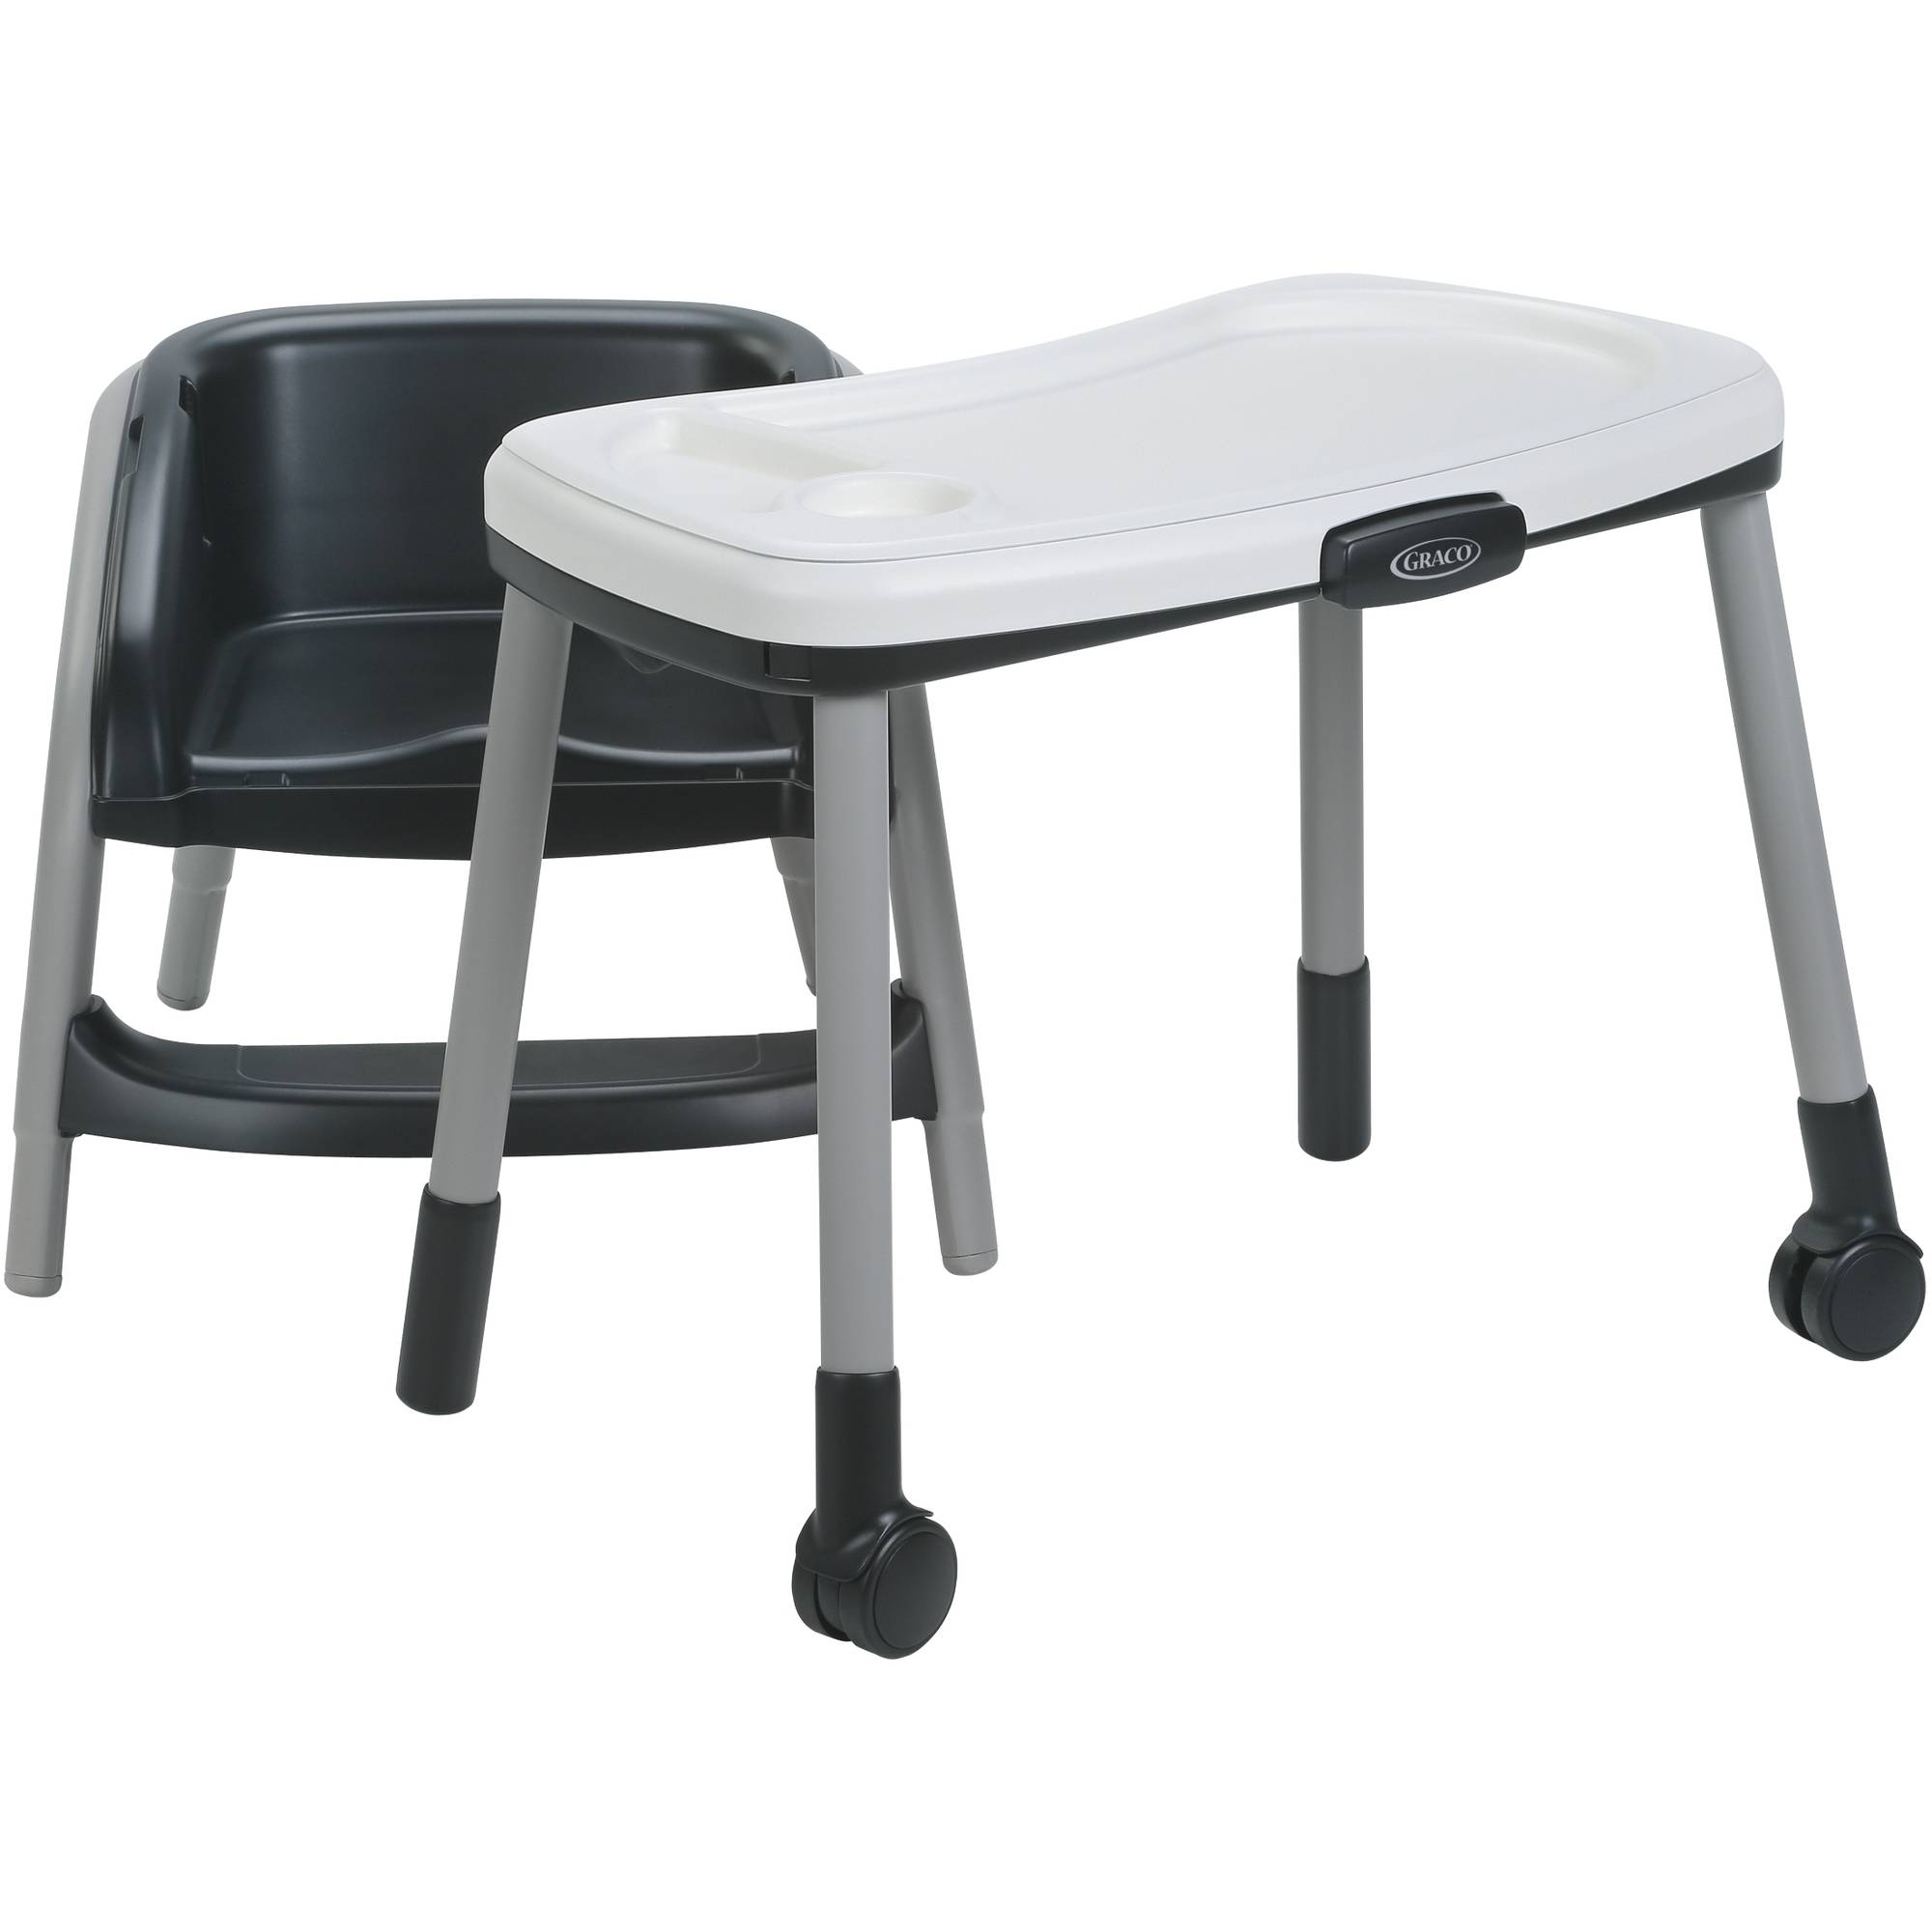 Graco baby strollers recalled across canada us besides 4950 likewise Folding Table Top Replacement in addition 19411160 also Leather Futon Beds. on evenflo folding high chair